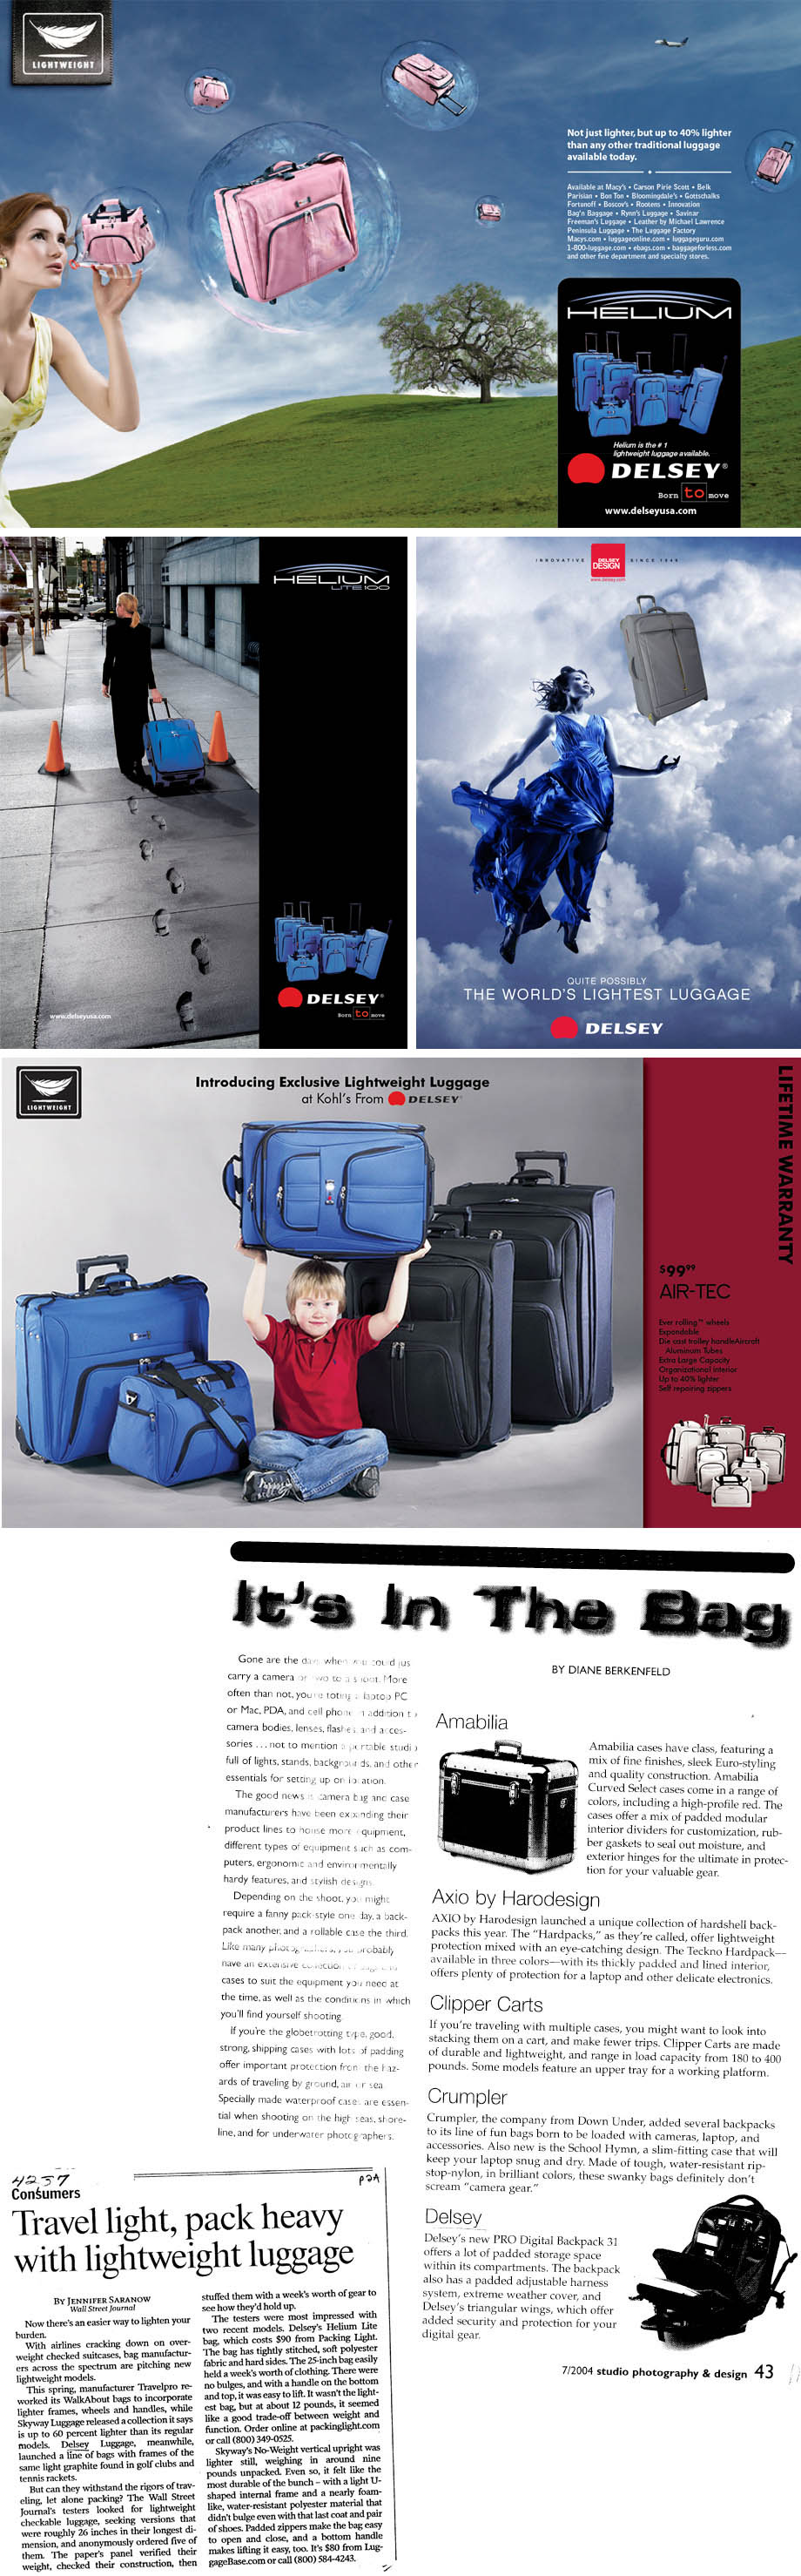 16629caa2 ... USA Today, Los Angeles Times, U.S. News & World Report, Travel Lady,  and The New York Times. Winner of a Smart Money Award 2005 for Best Carry-On  Bag.